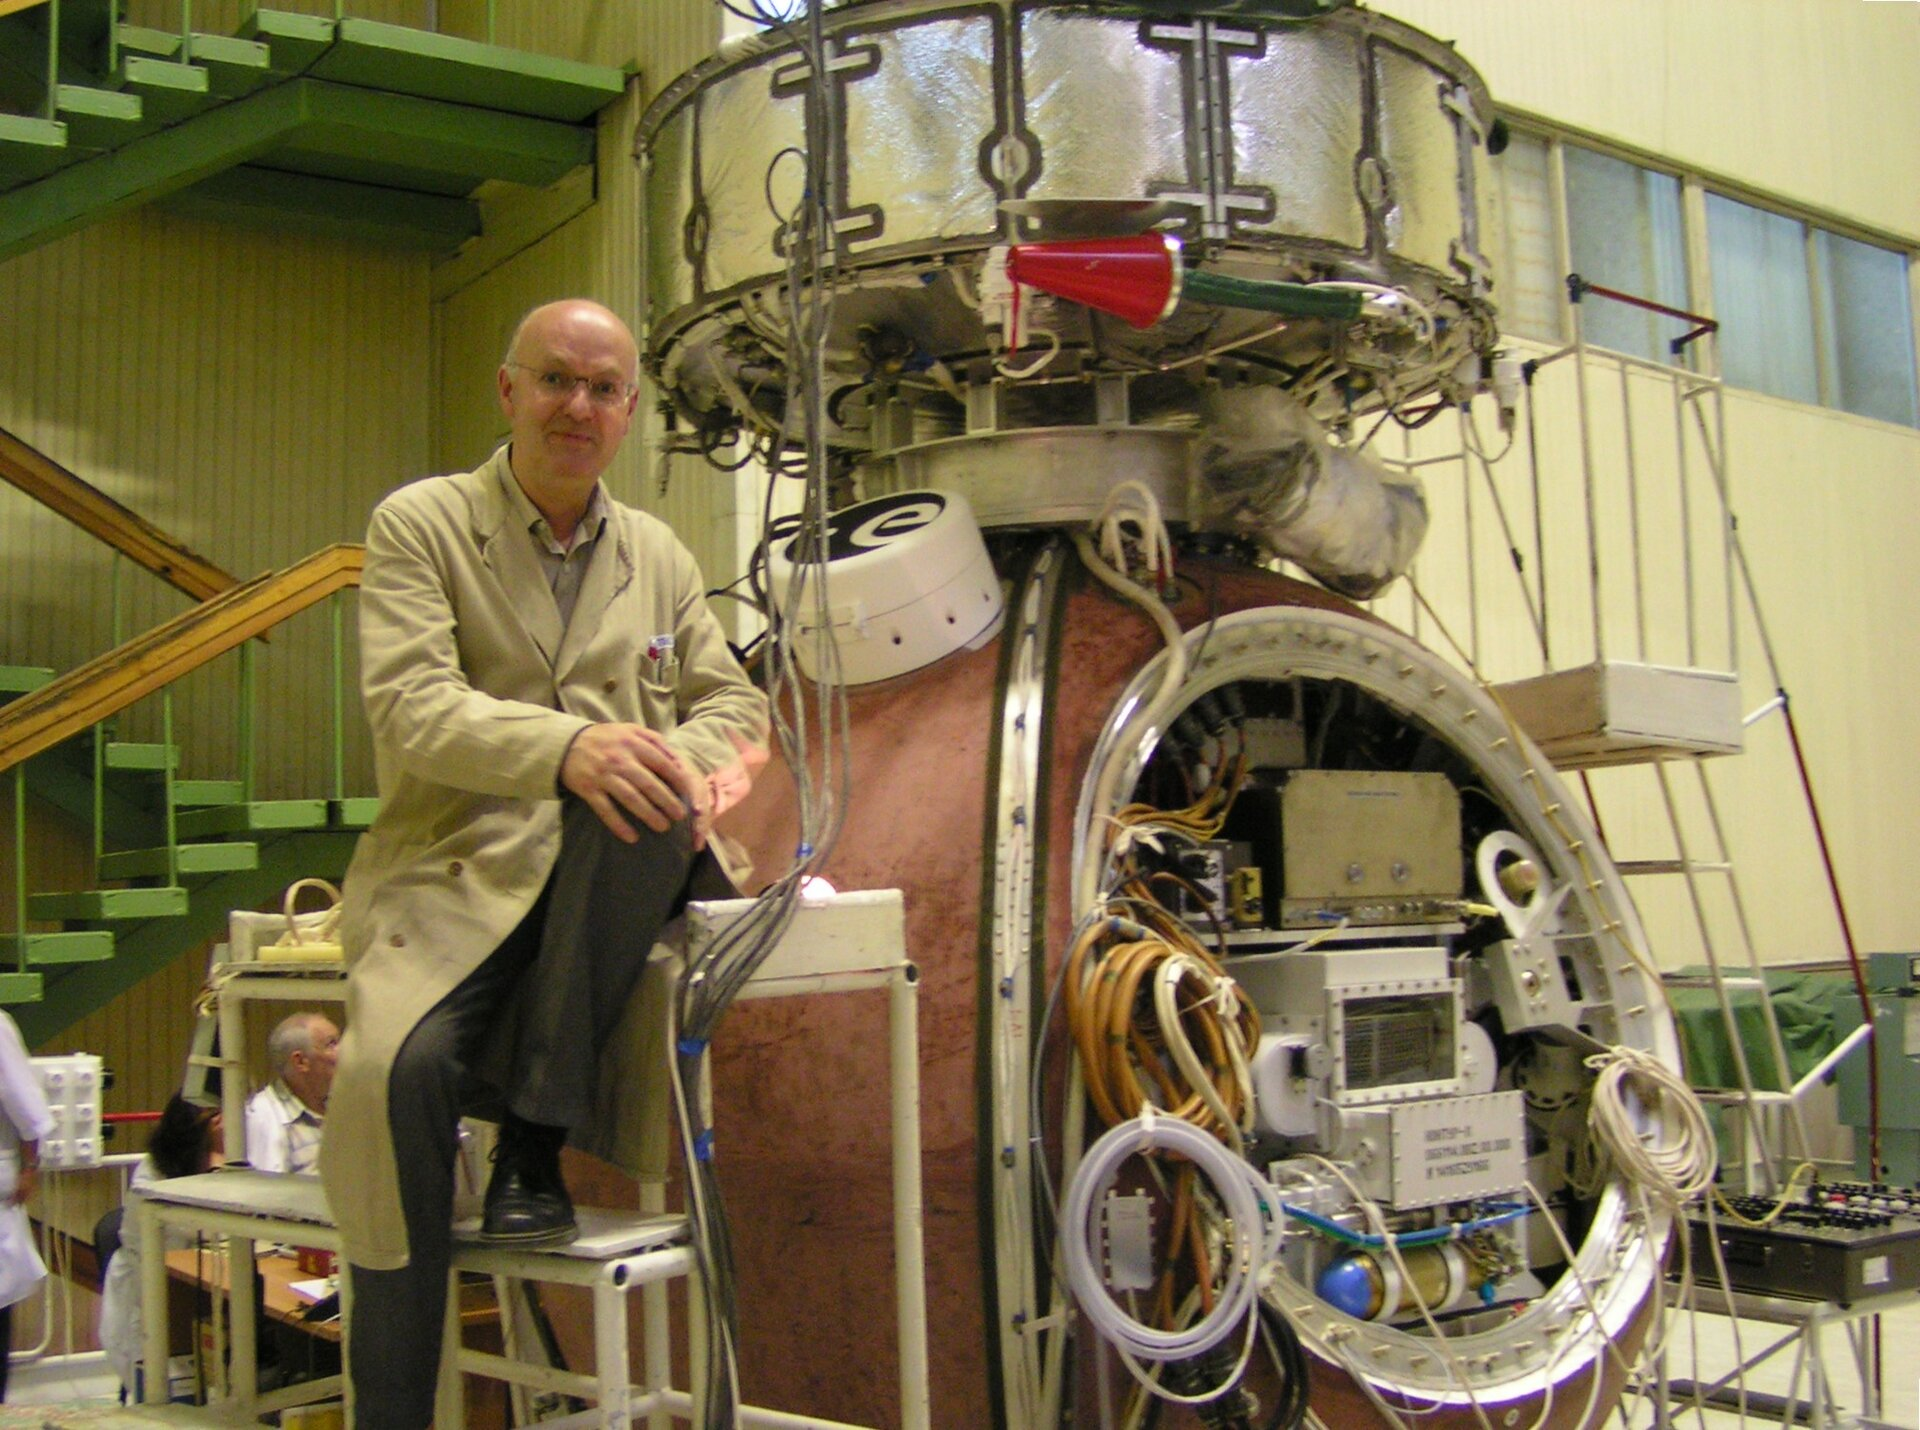 René Demets with Biopan container at the surface of Foton-M3 capsule